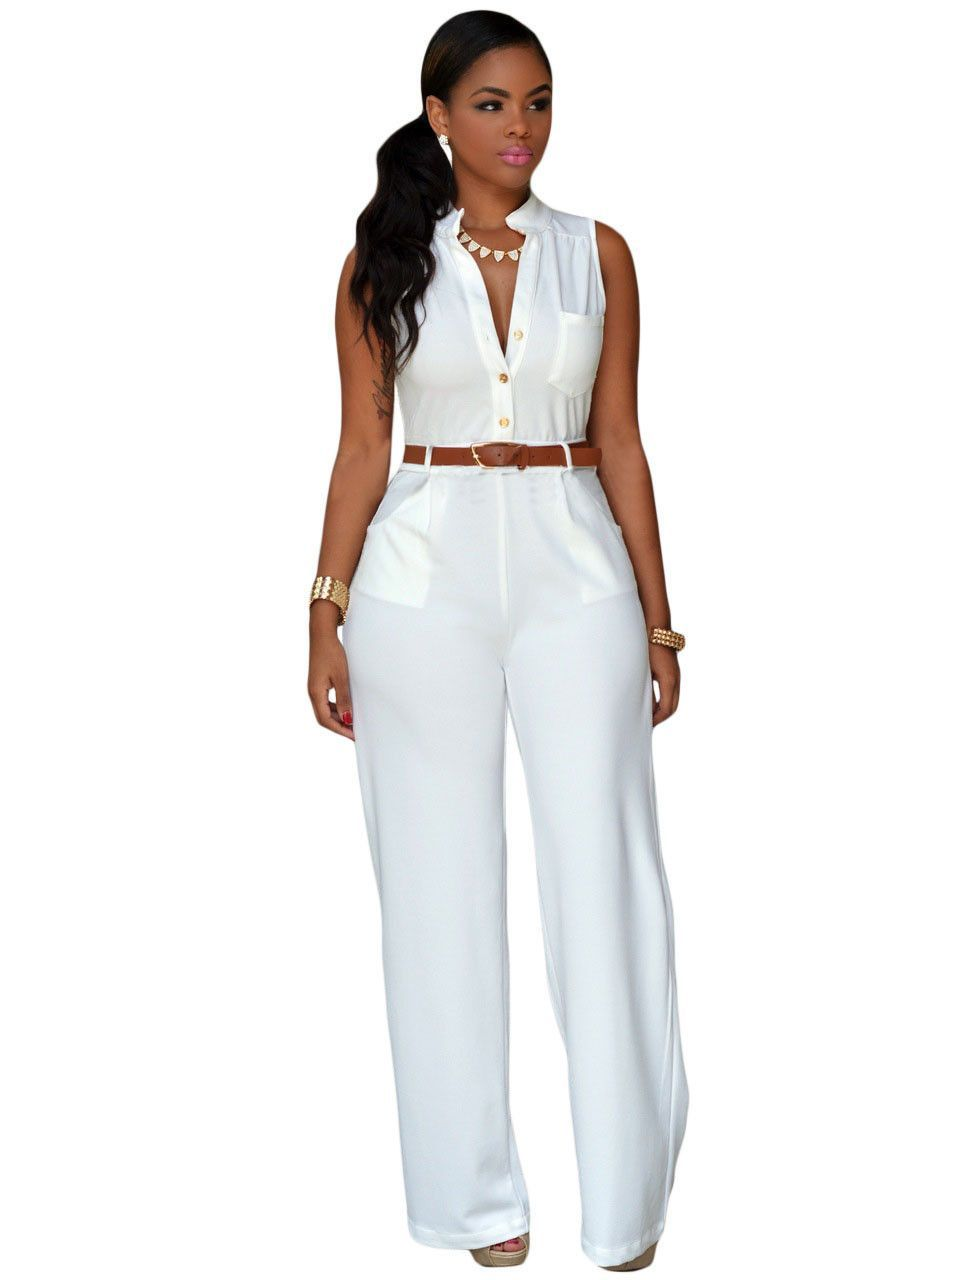 947332ae3283 Zkess Jumpsuit Long Pants Women Rompers Sleeveless 2XL V-neck 2016 Belt  Solid Sexy Night Club Elegant Slim Jumpsuits Overalls